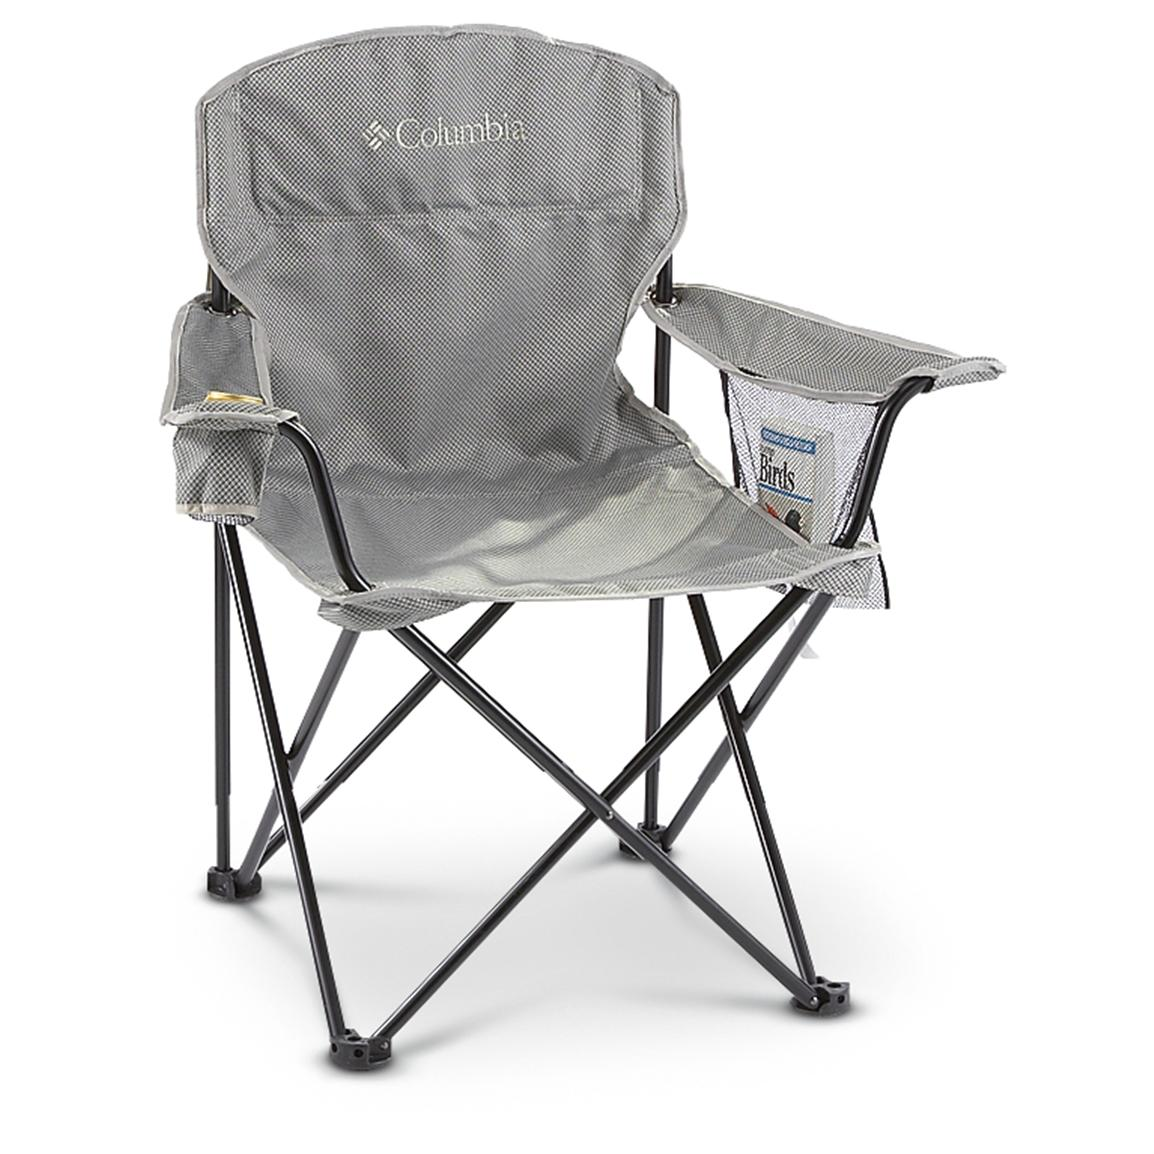 Travel Chair Columbia Trek And Travel Camp Chair 182028 Chairs At